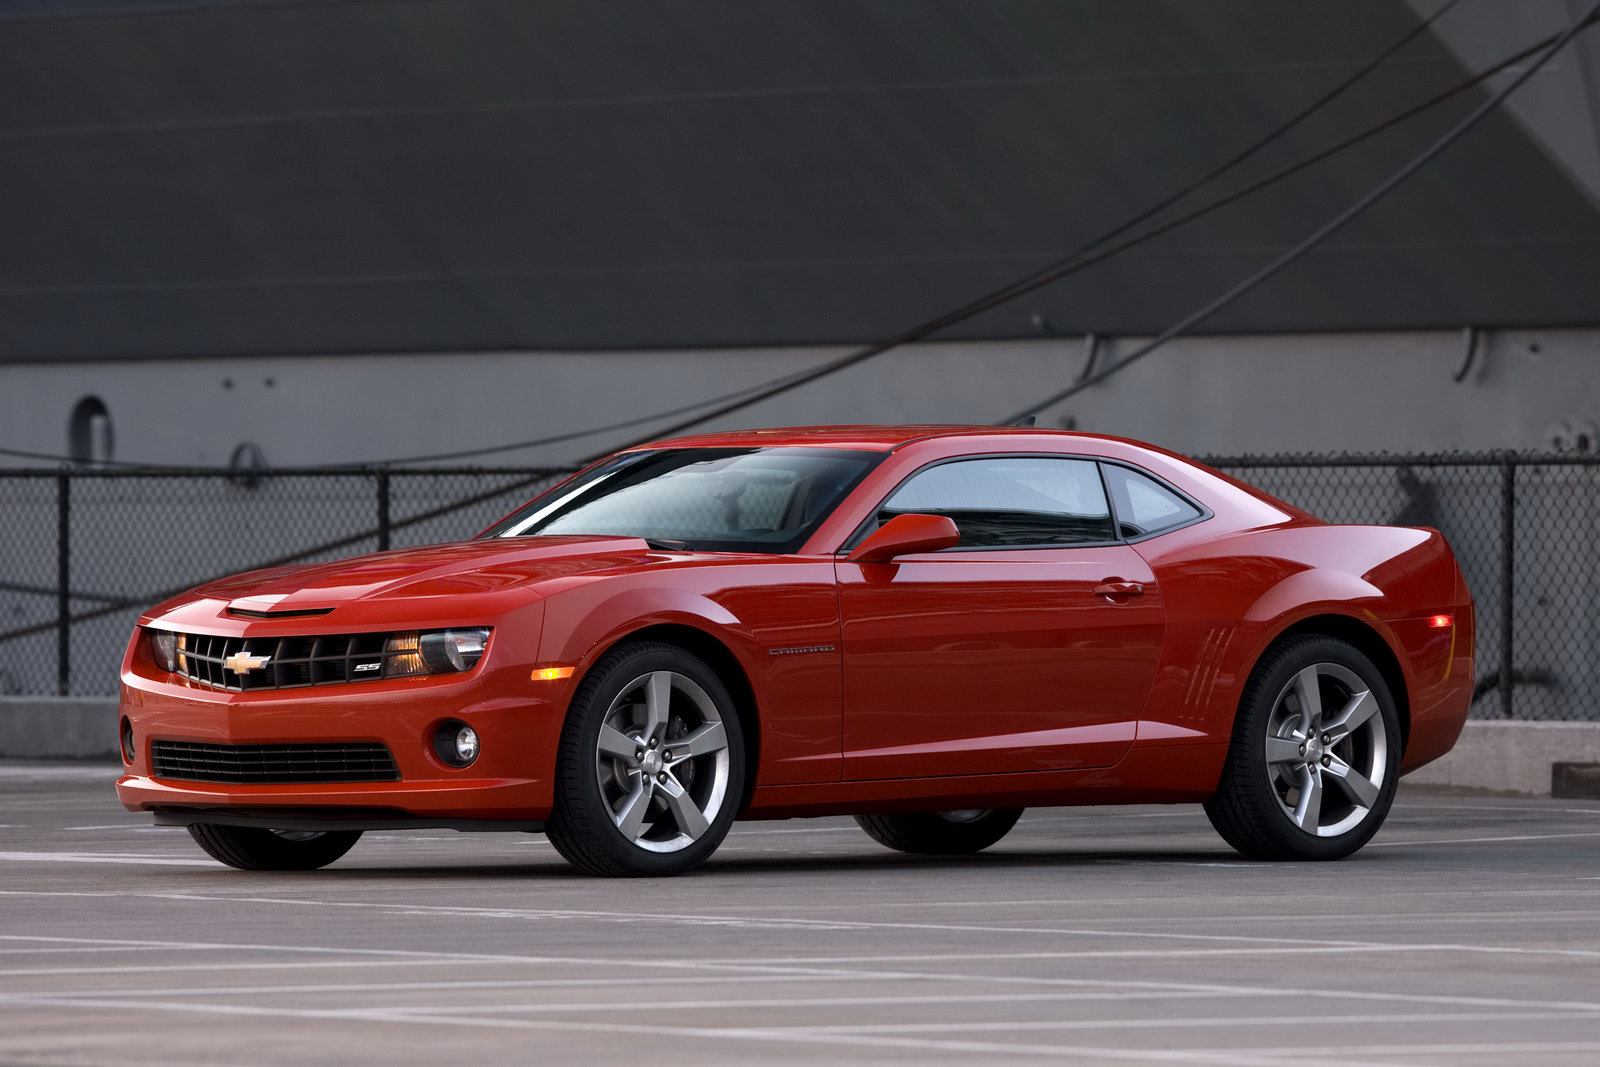 2011 Chevy Camaro With Re Rated 312hp V6 And Hud Priced